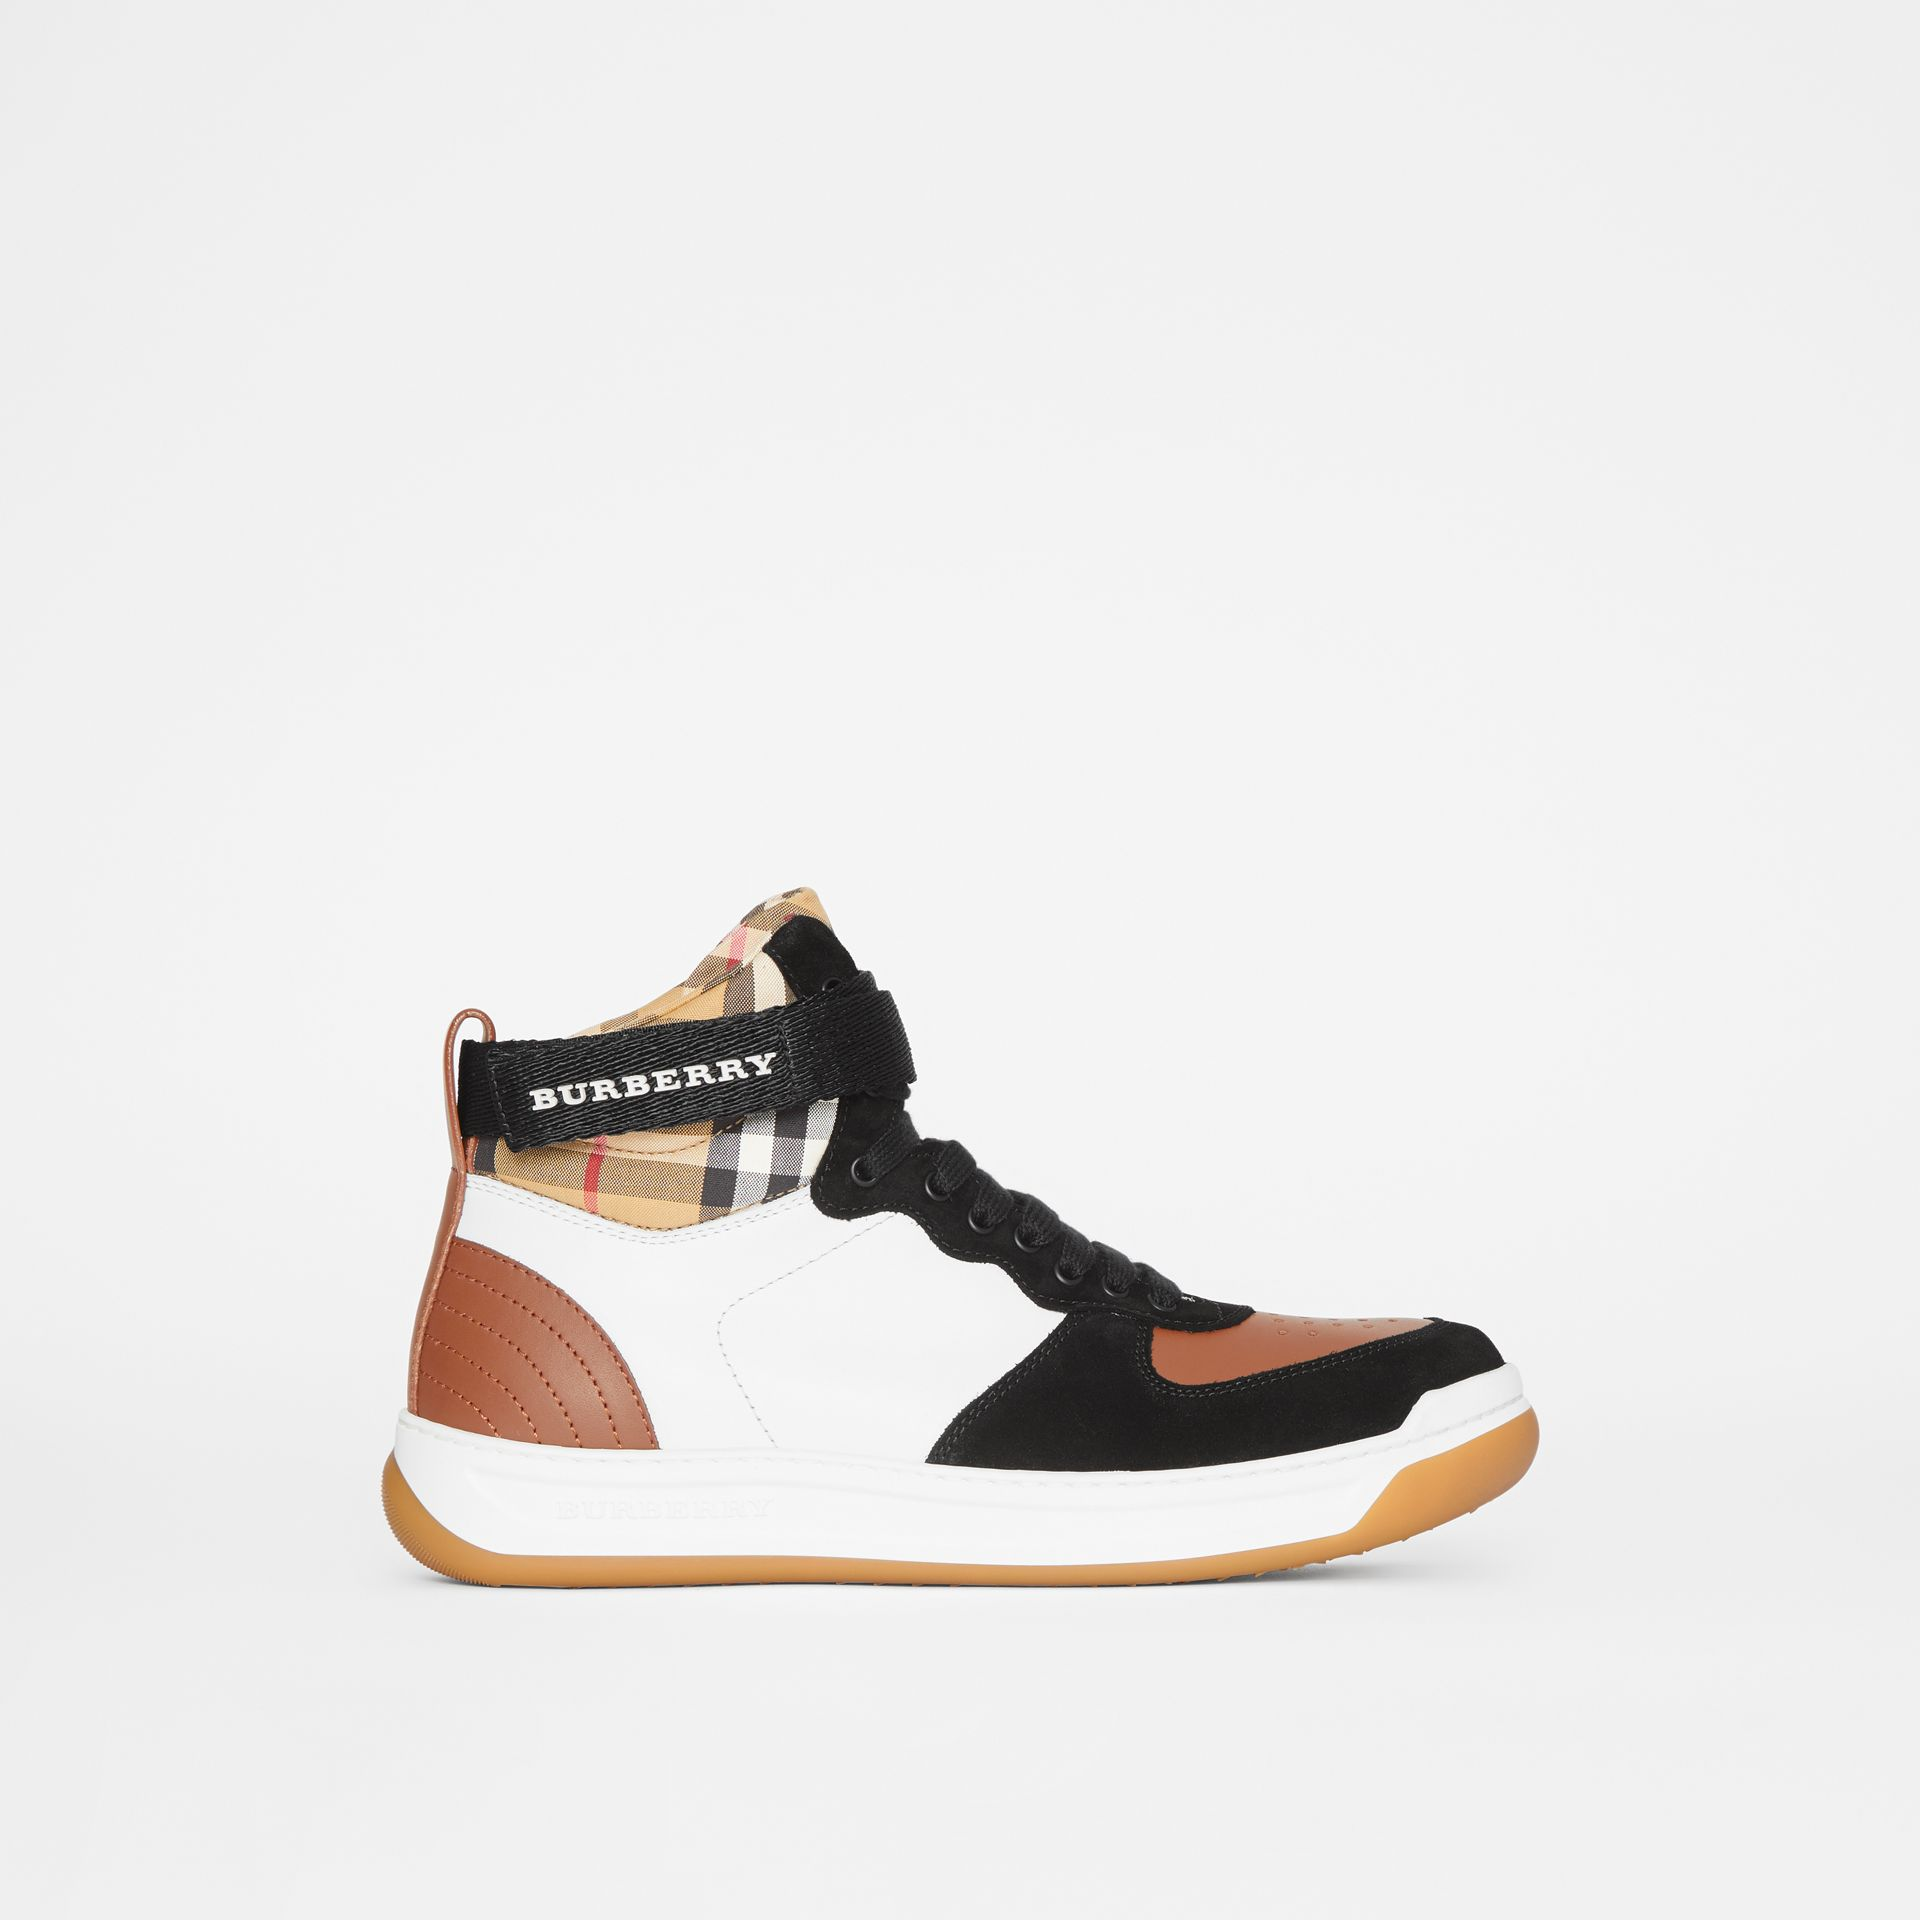 Leather and Suede High-top Sneakers in Camel - Women | Burberry - gallery image 5